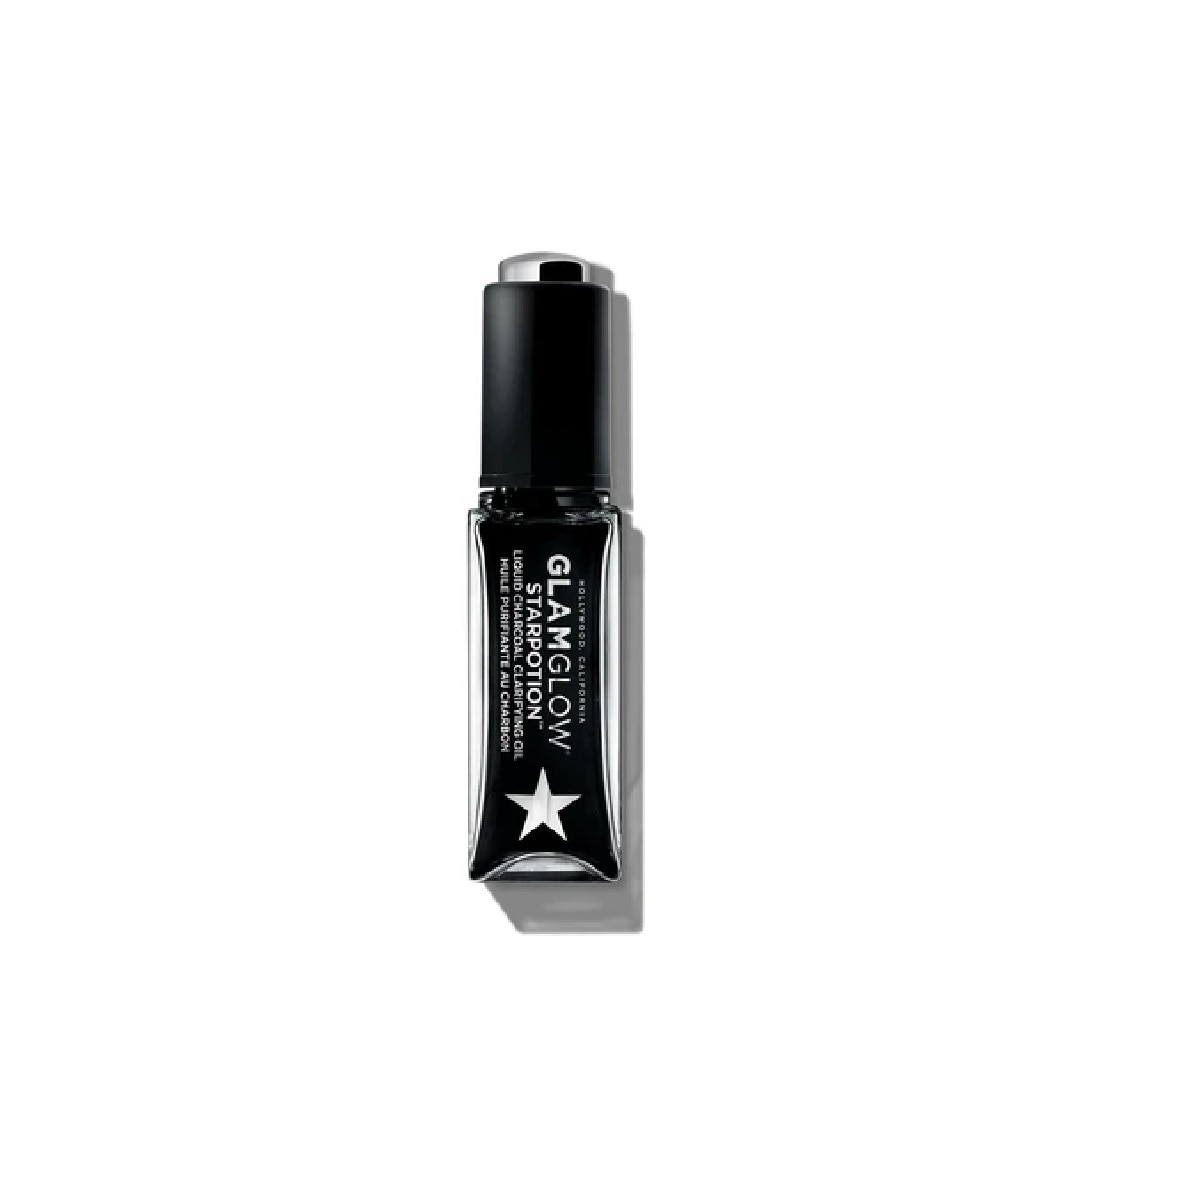 GLAMGLOW STARPOTION LIQUID CHARCOAL CLARIFYING OIL 30 ML